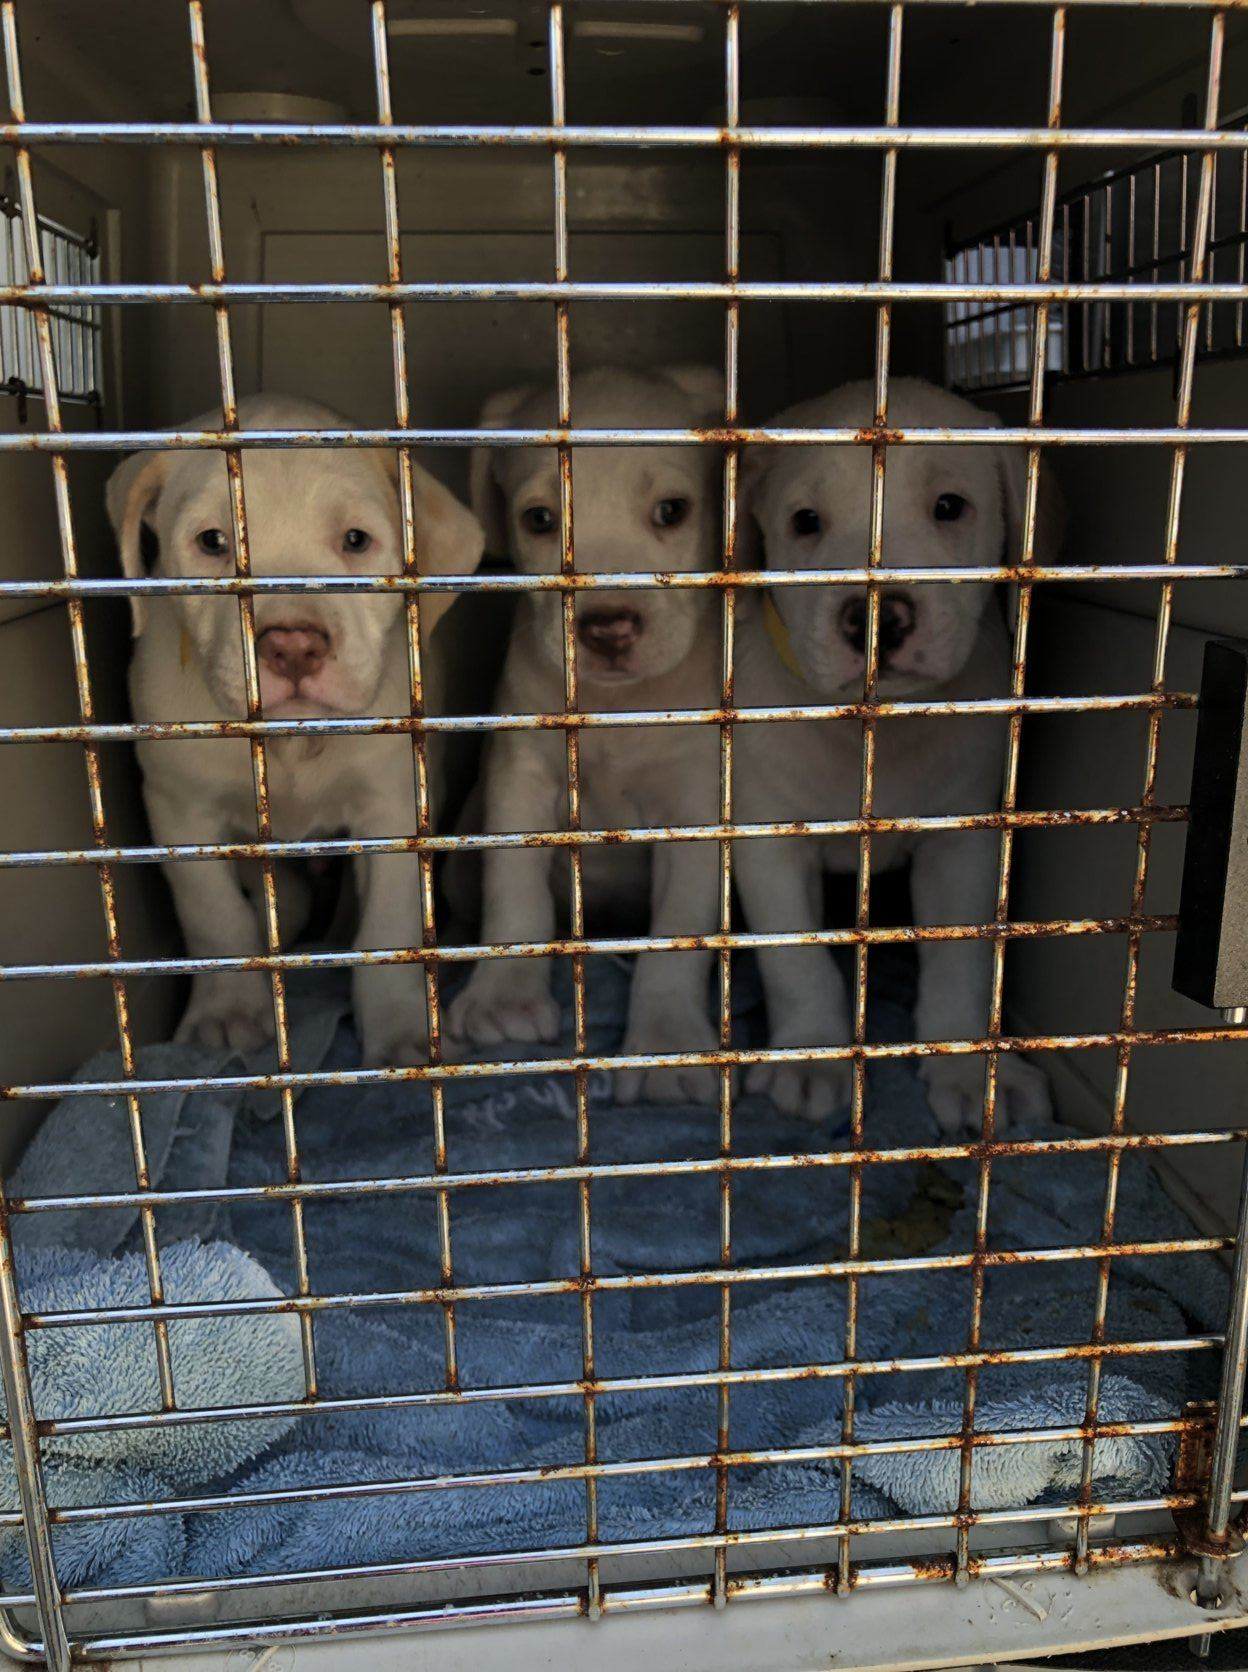 <p>Forty-two homeless cats and dogs from rural South Carolina arrived in D.C. Saturday, after being rescued from Hurricane Dorian.</p> <p>Lucky Dog, a foster-based rescue organization, sent 11 volunteers to Florence County, South Carolina, before the storm to help prepare a shelter and to rescue the animals.</p> <p>&#8220;We wanted to be there in case there was anything needed for the animals in that county, the county that Lucky Dog has been really committed to for the past seven years,&#8221; Lucky Dog founder and executive director Mirah Horowitz told WTOP, while she was in the rescue van on the way back to D.C.</p>